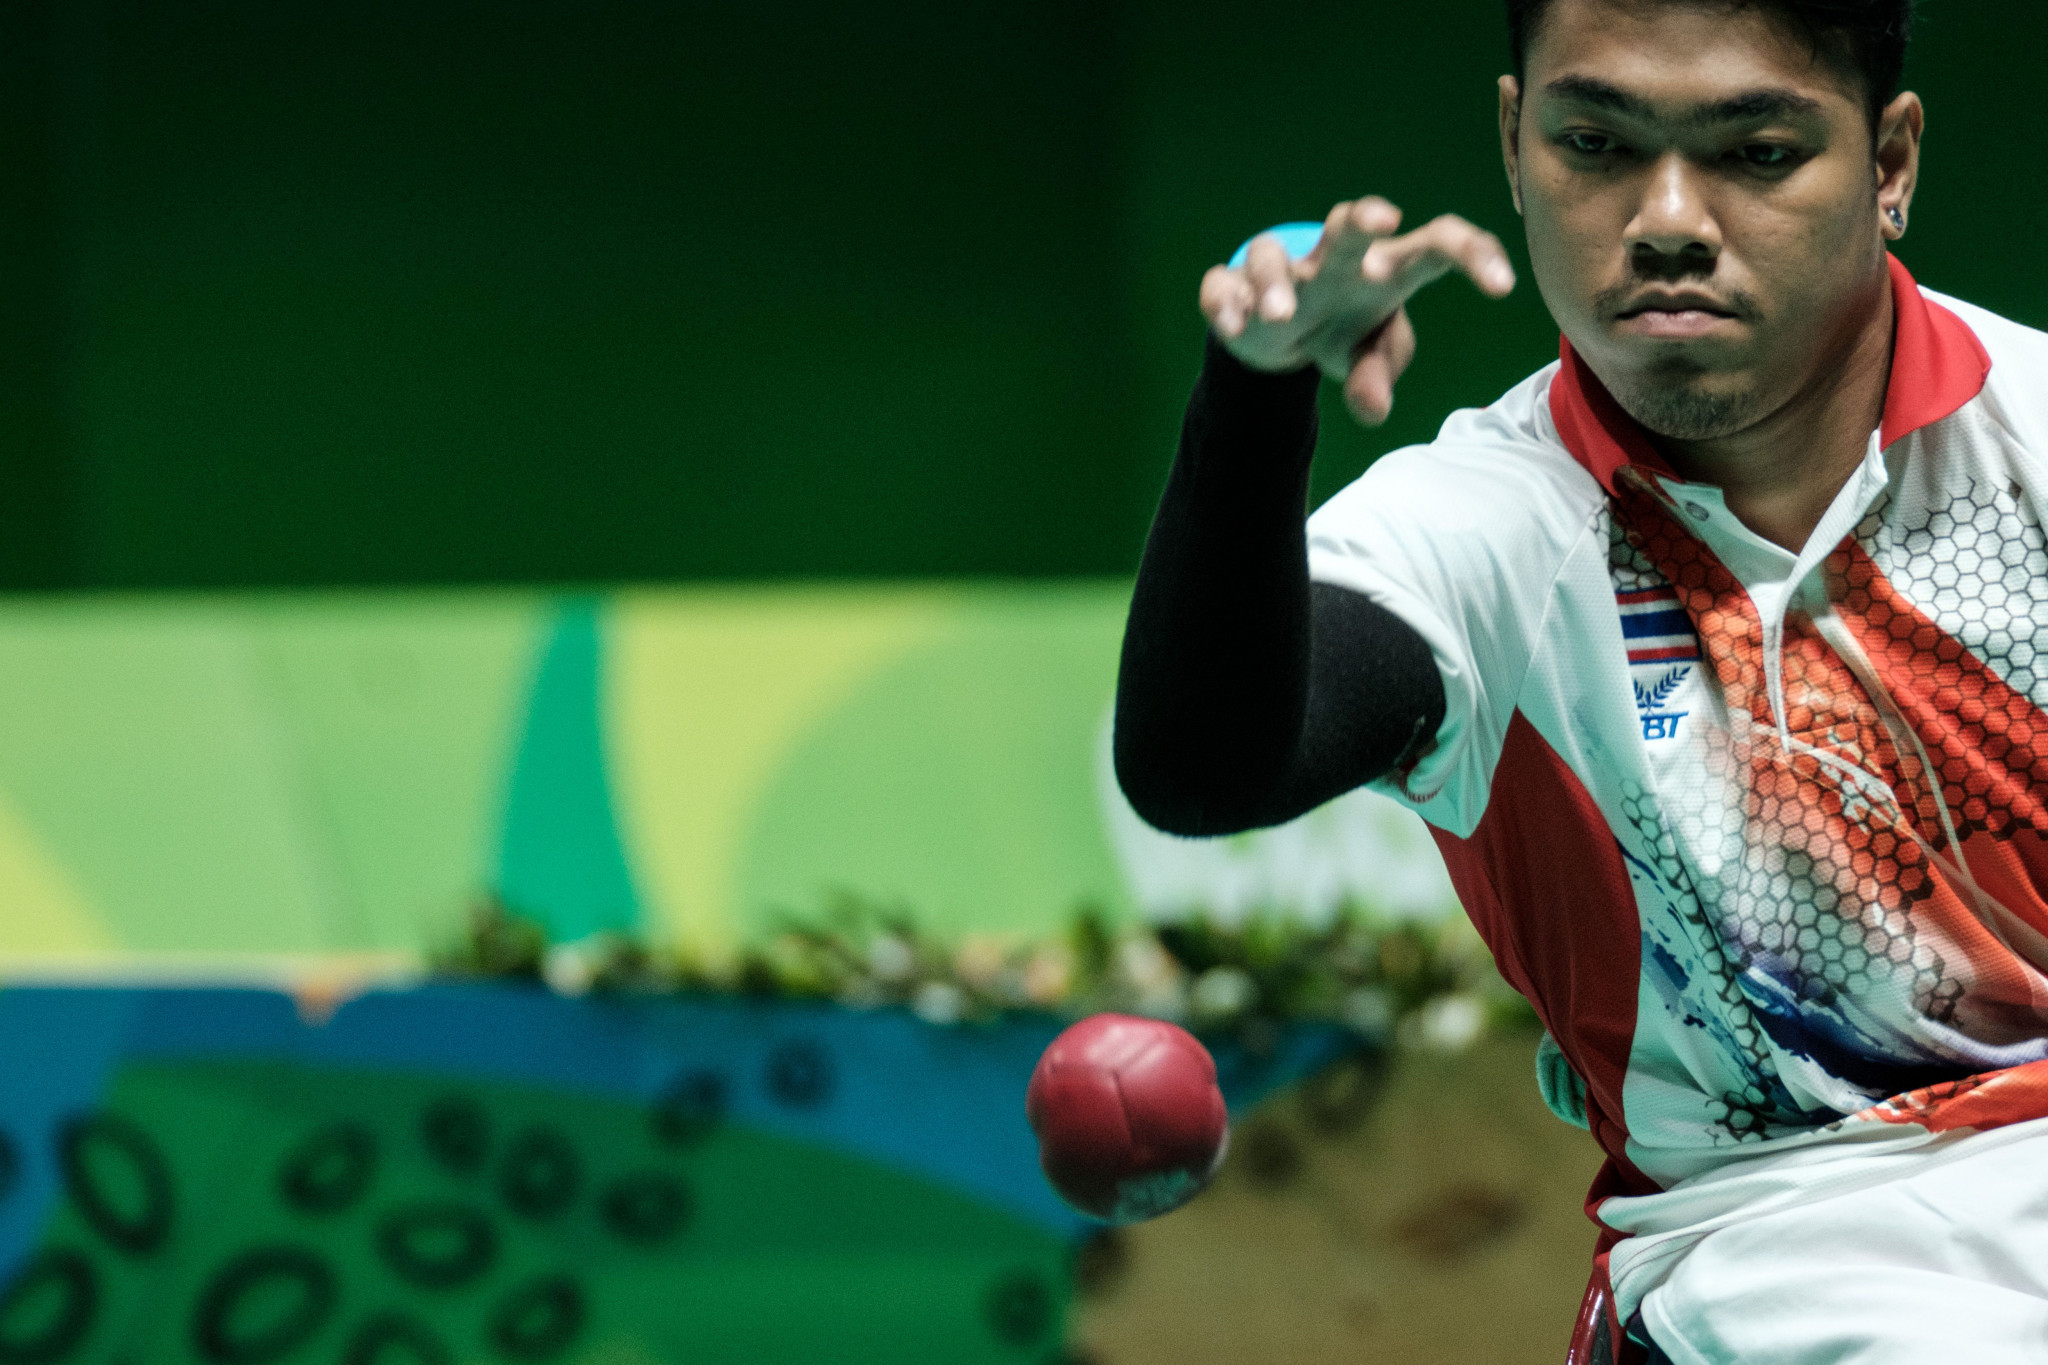 Boccia International Sports Federation releases video on muscle strengthening